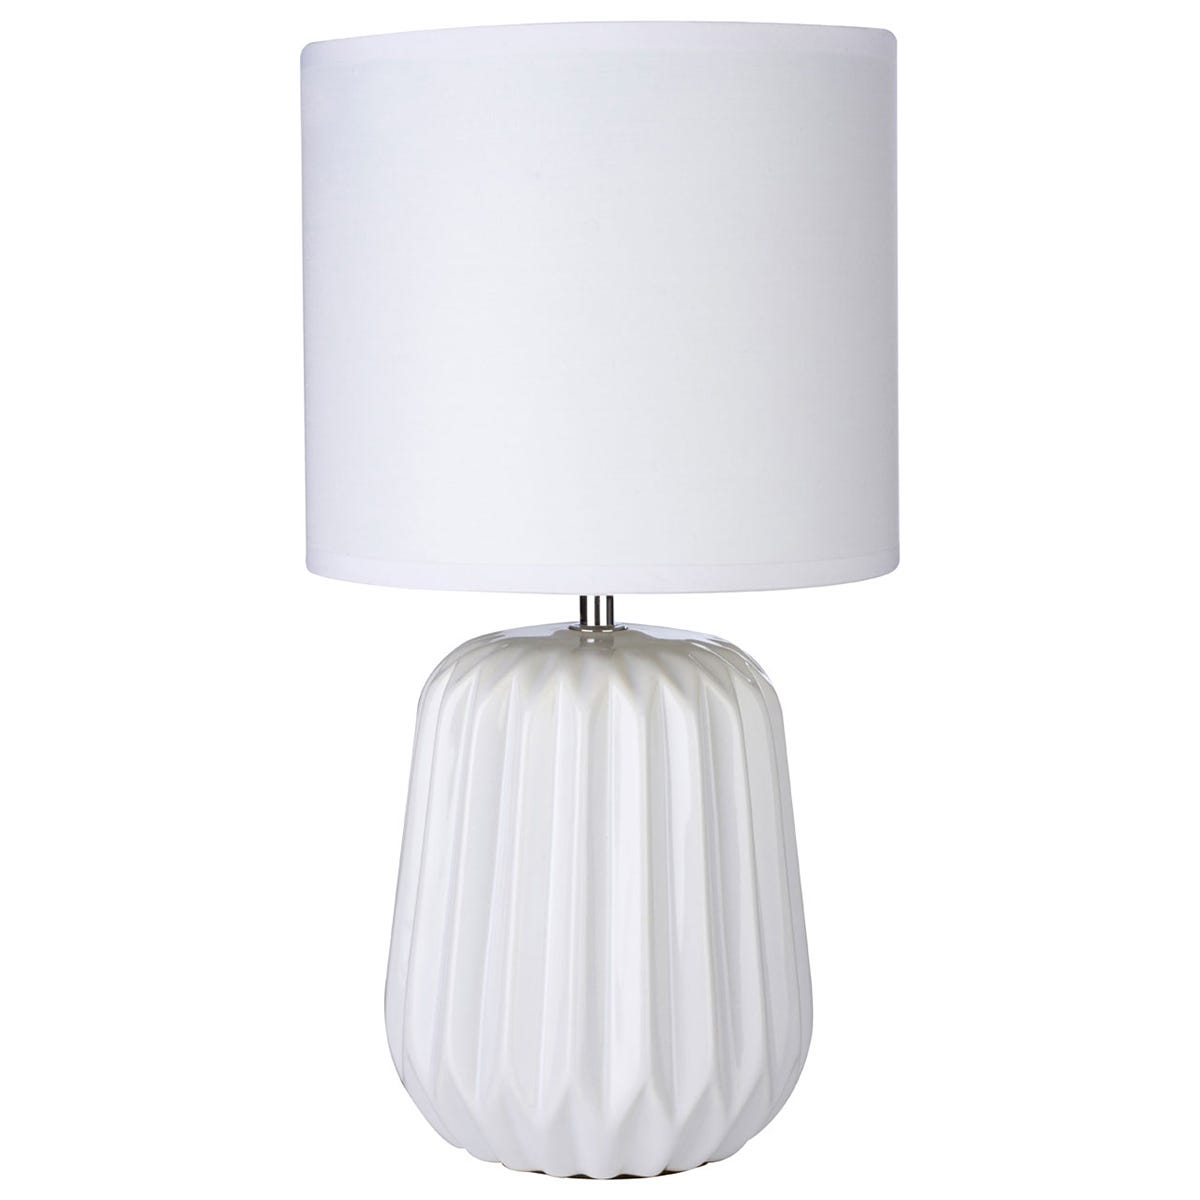 Premier Housewares Winola Table Lamp in White Ceramic with White Fabric Shade